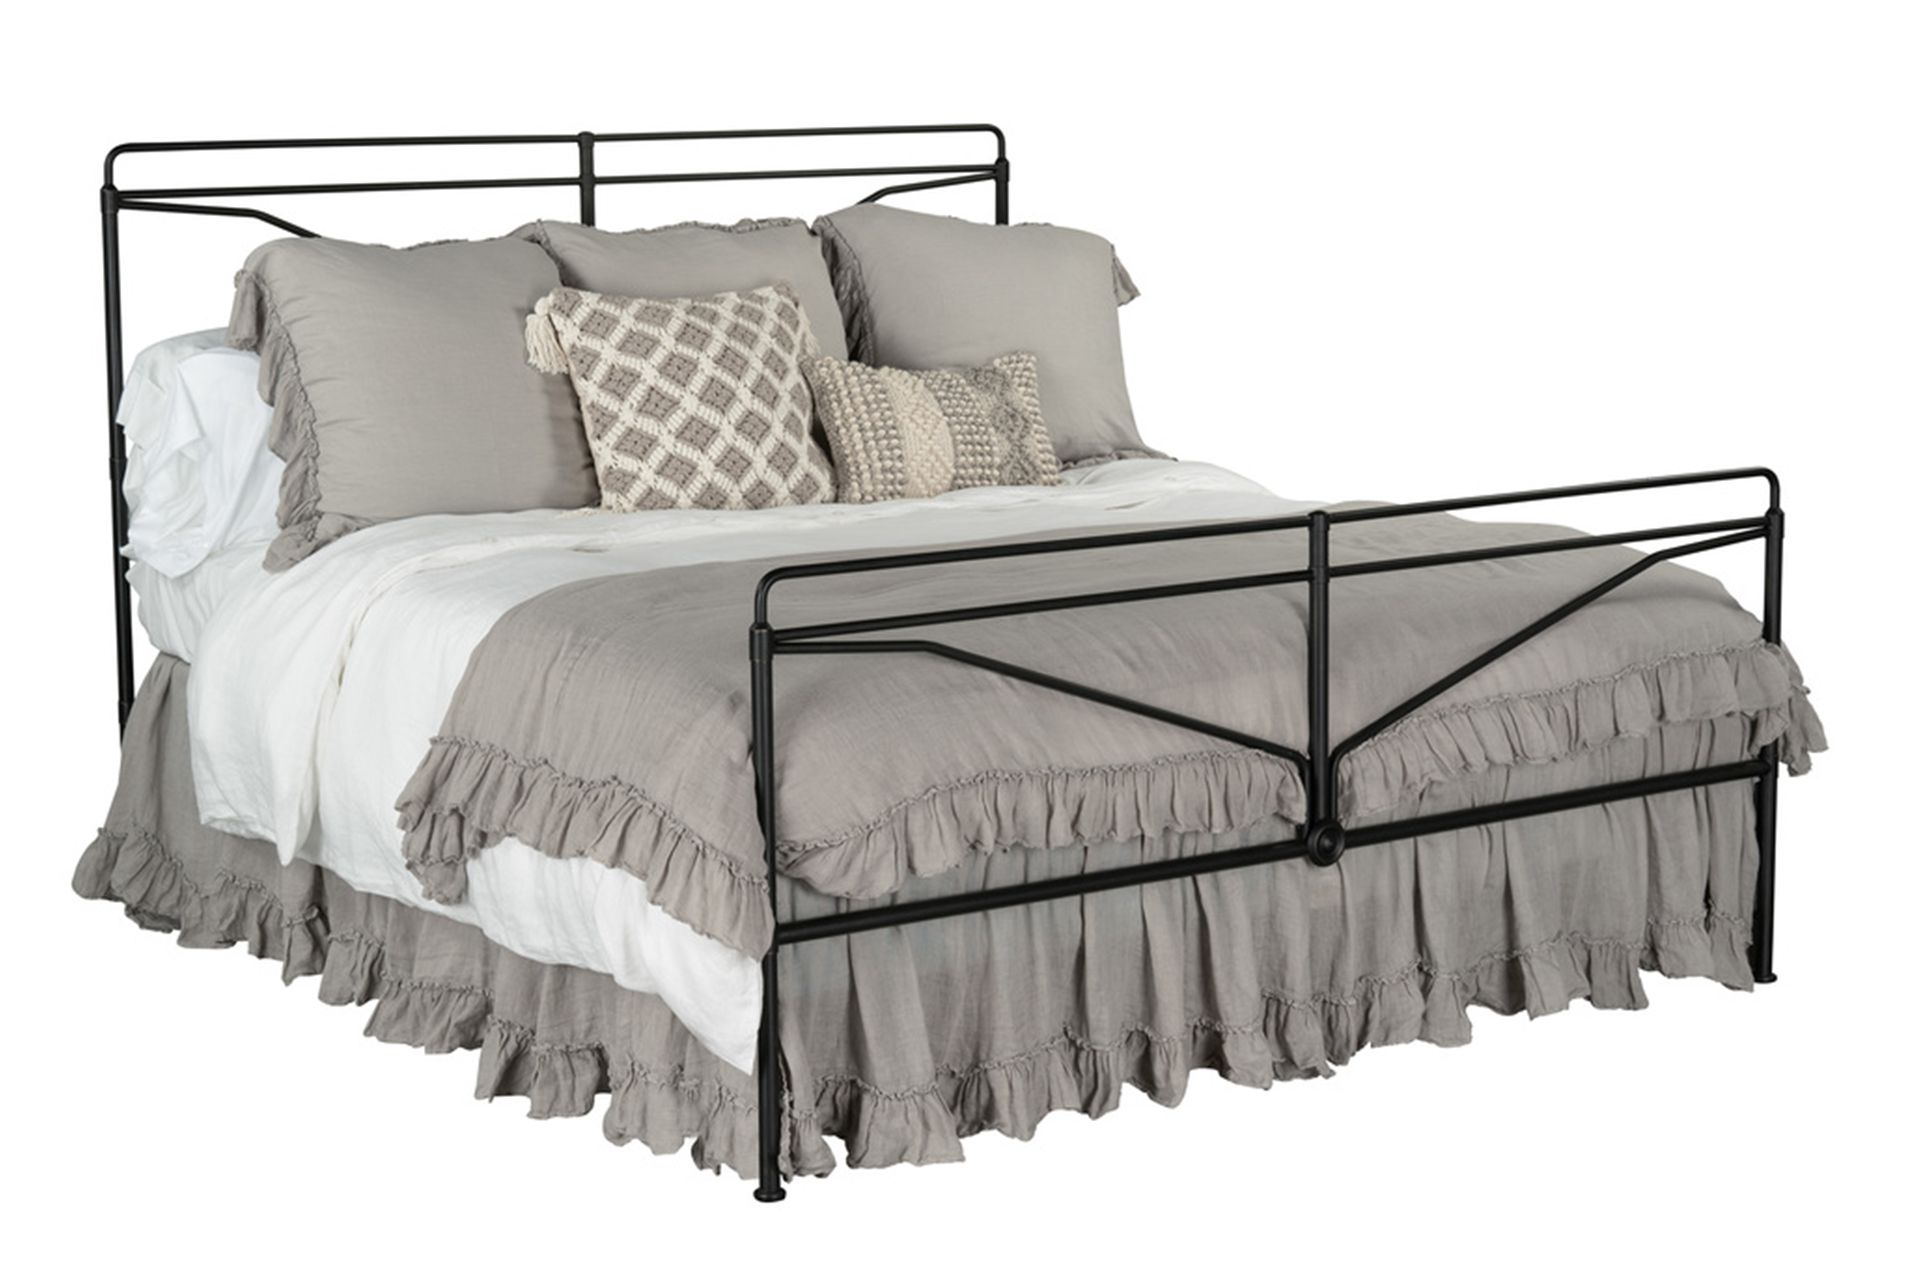 Magnolia Home Laverty Eastern King Metal Bed By Joanna Gaines Queen Metal Bed King Metal Bed Magnolia Homes